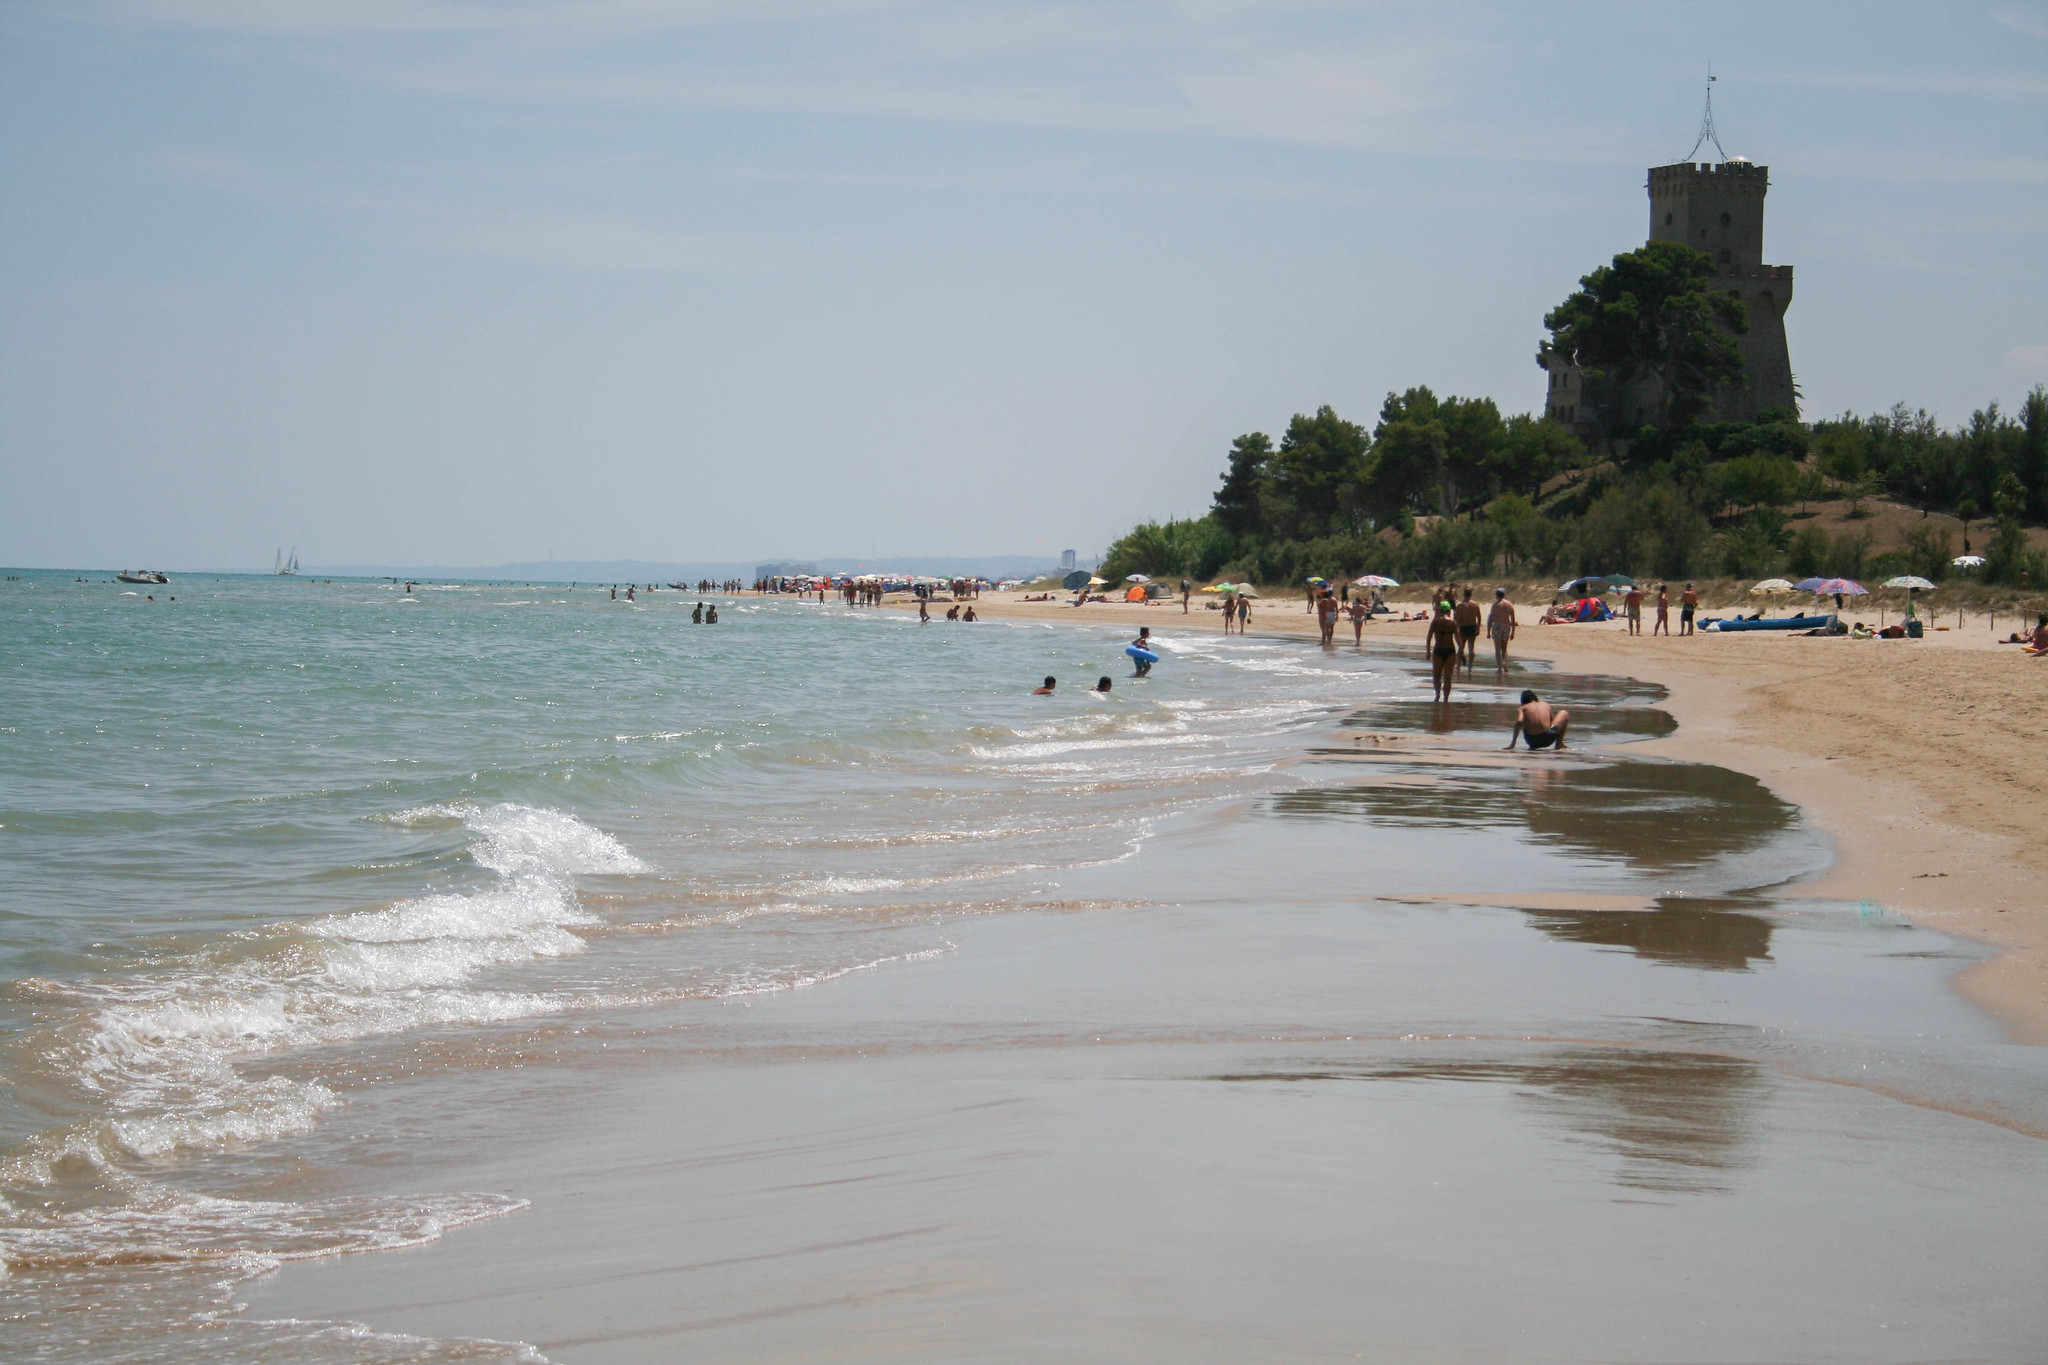 Torre del cerrano natural reserve , free beaches, clean water and pine trees for shade during hot hours